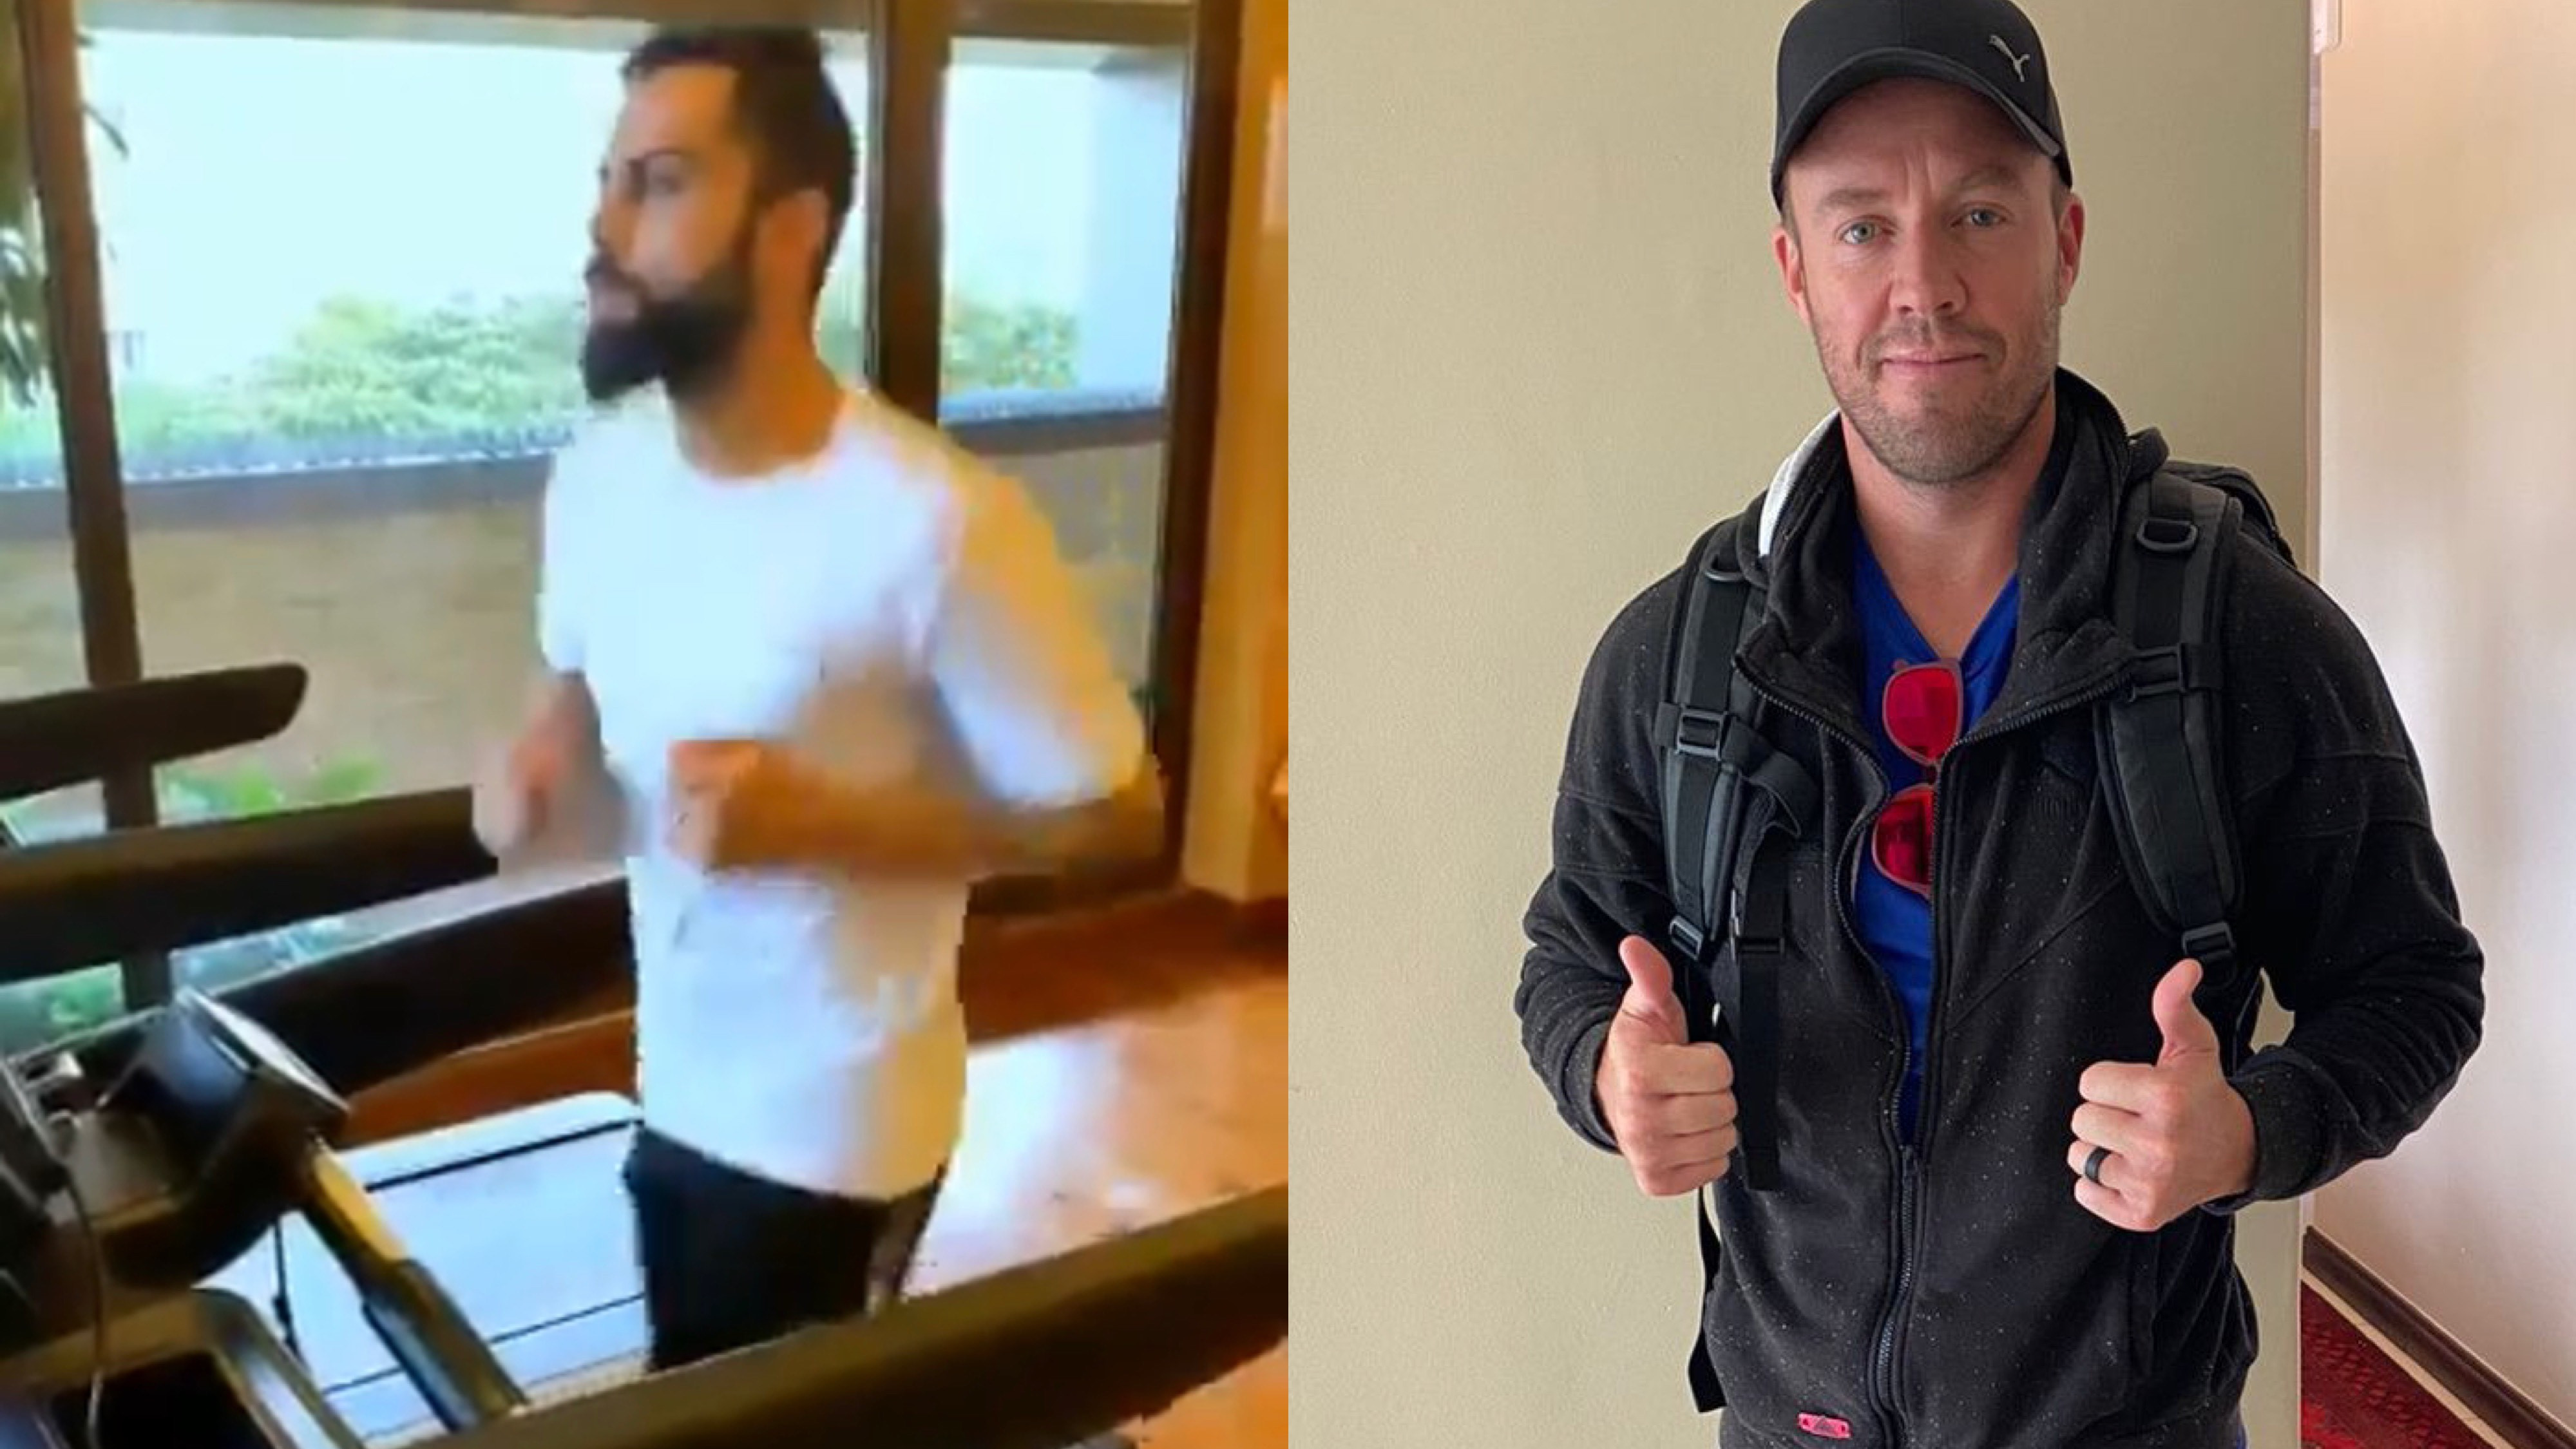 IPL 2021: AB de Villiers challenges Virat Kohli for a race after cheeky query from RCB skipper